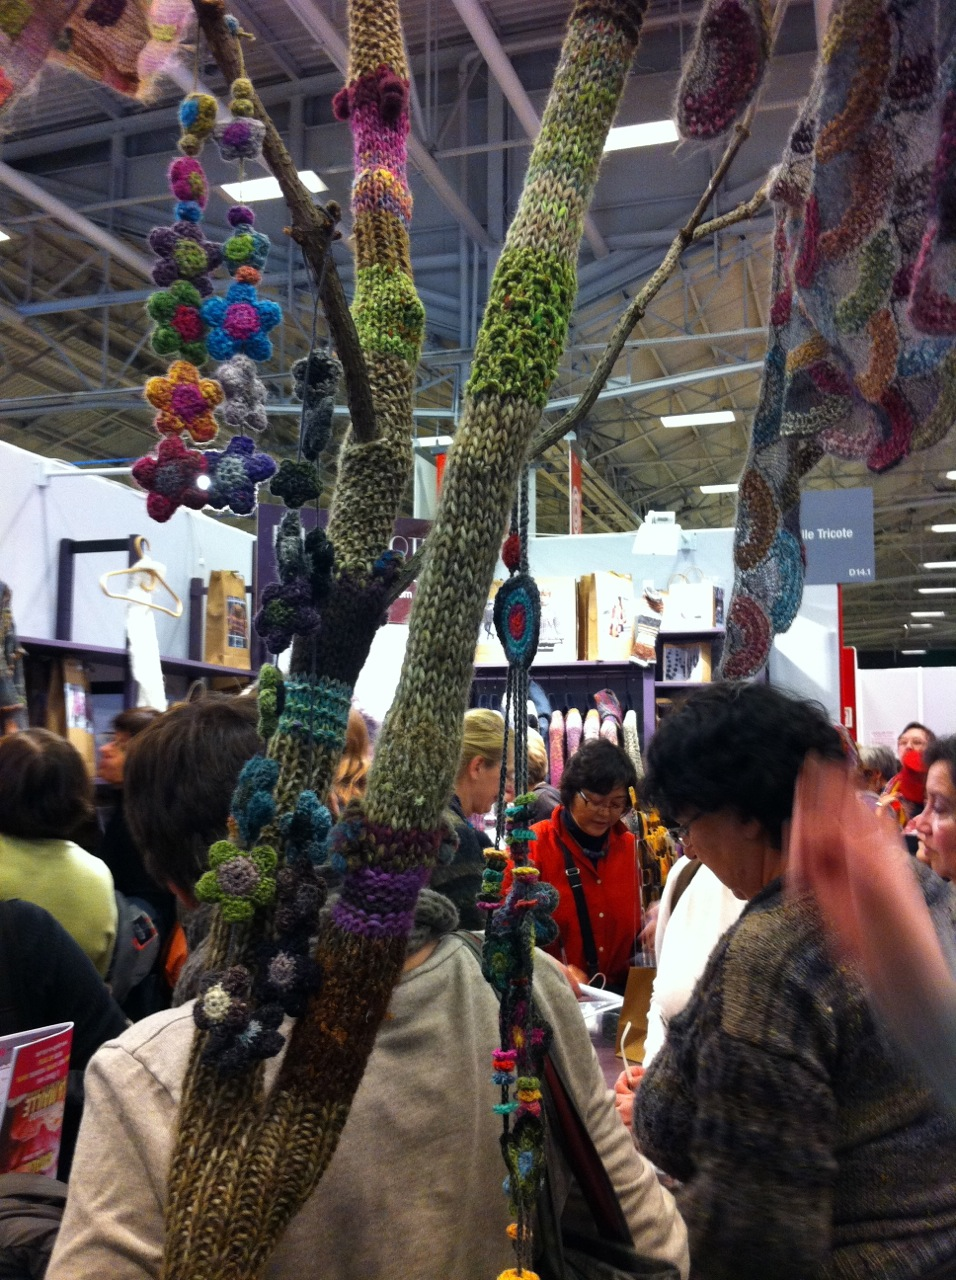 This yarn-bombed tree that was part of the display in one of the booths totally made my day.